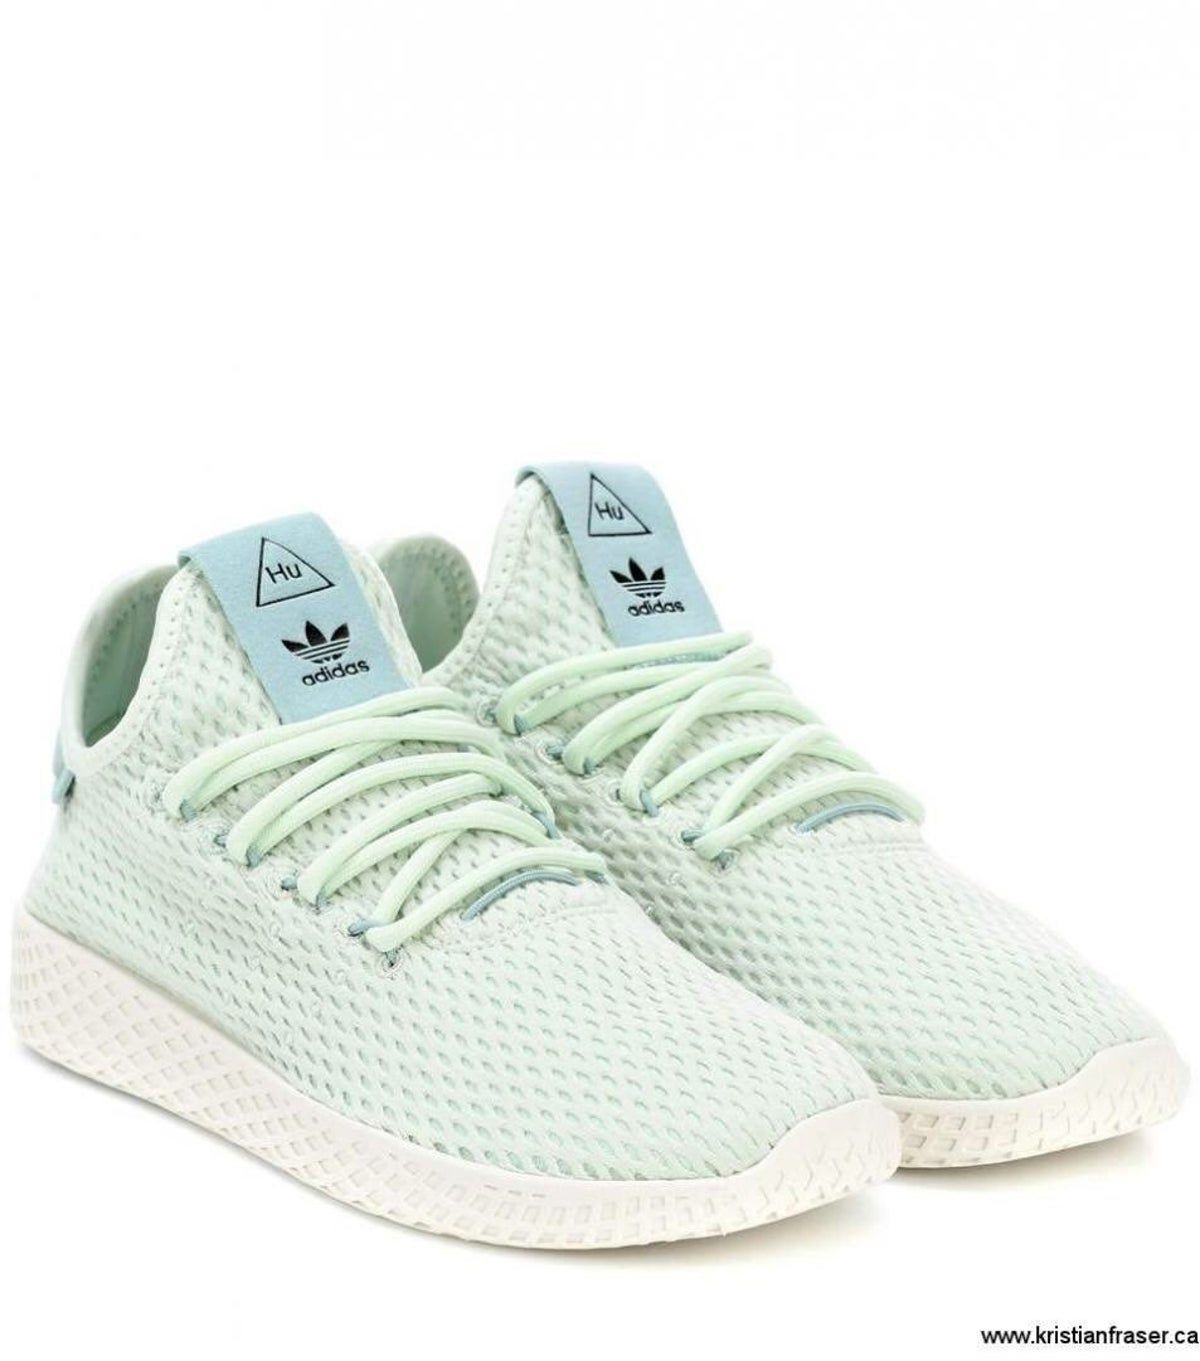 Pin By Secret Filipino On His Shoes In 2020 Adidas Pharrell Williams Williams Tennis Sneakers